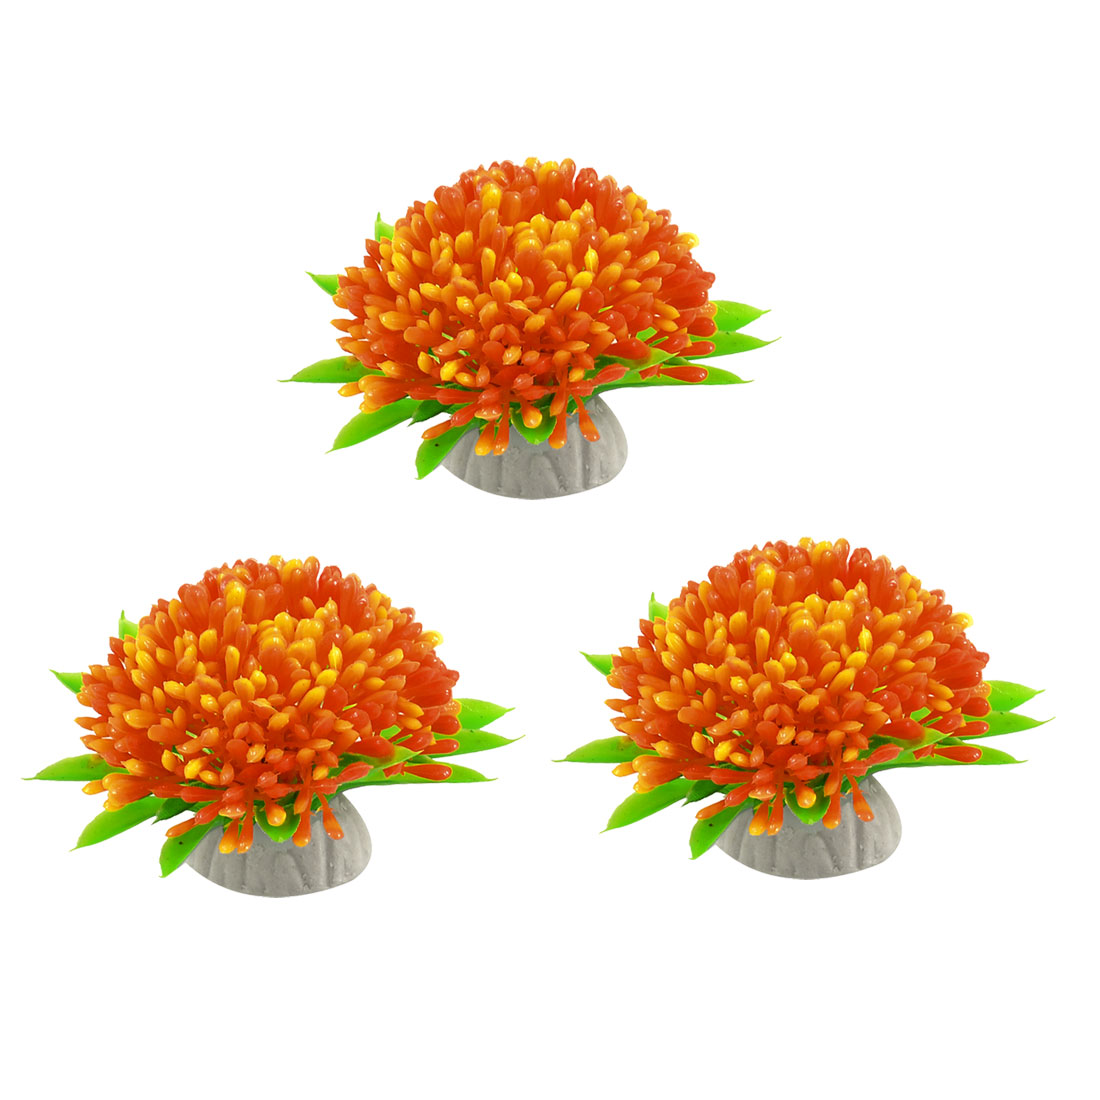 3 Pcs Green Leaves Orange Flower Aquarium Plastic Plants Decor Ornament 1.6""